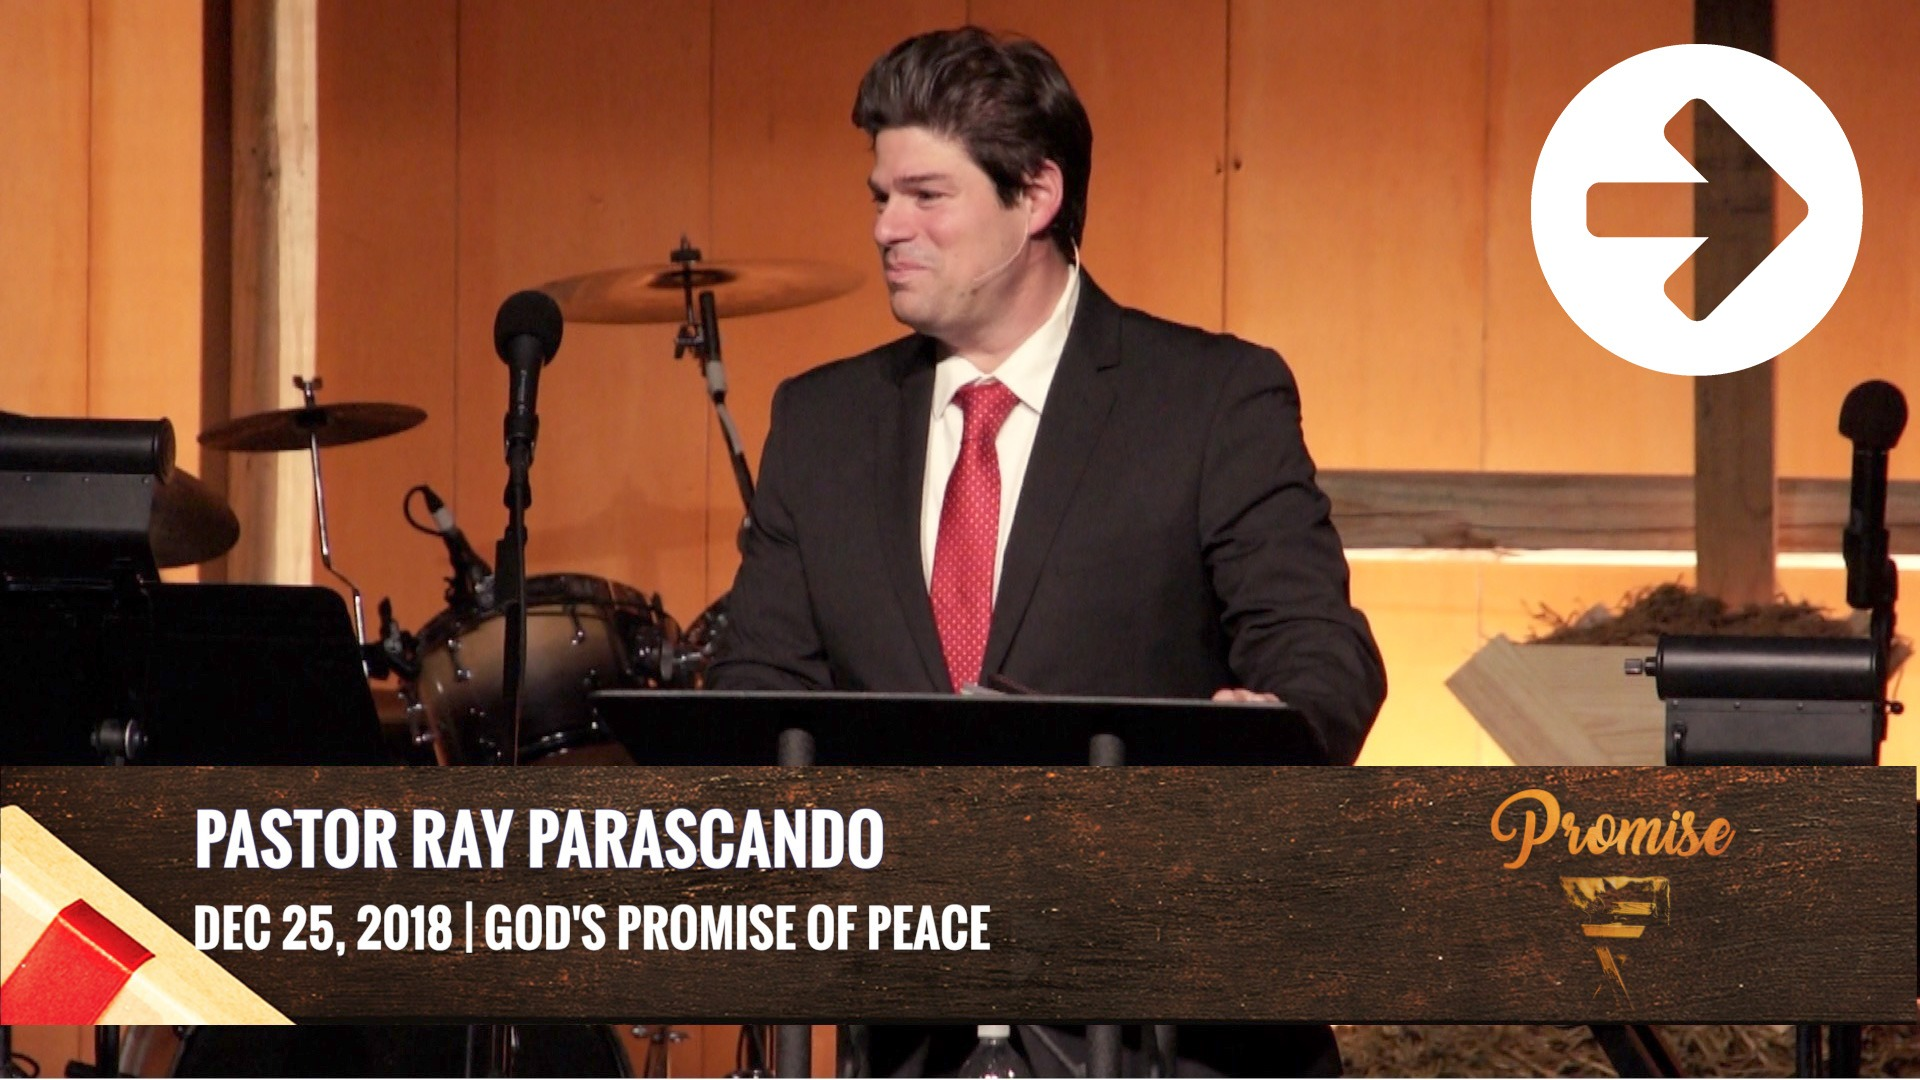 God's Promise Of Peace Image